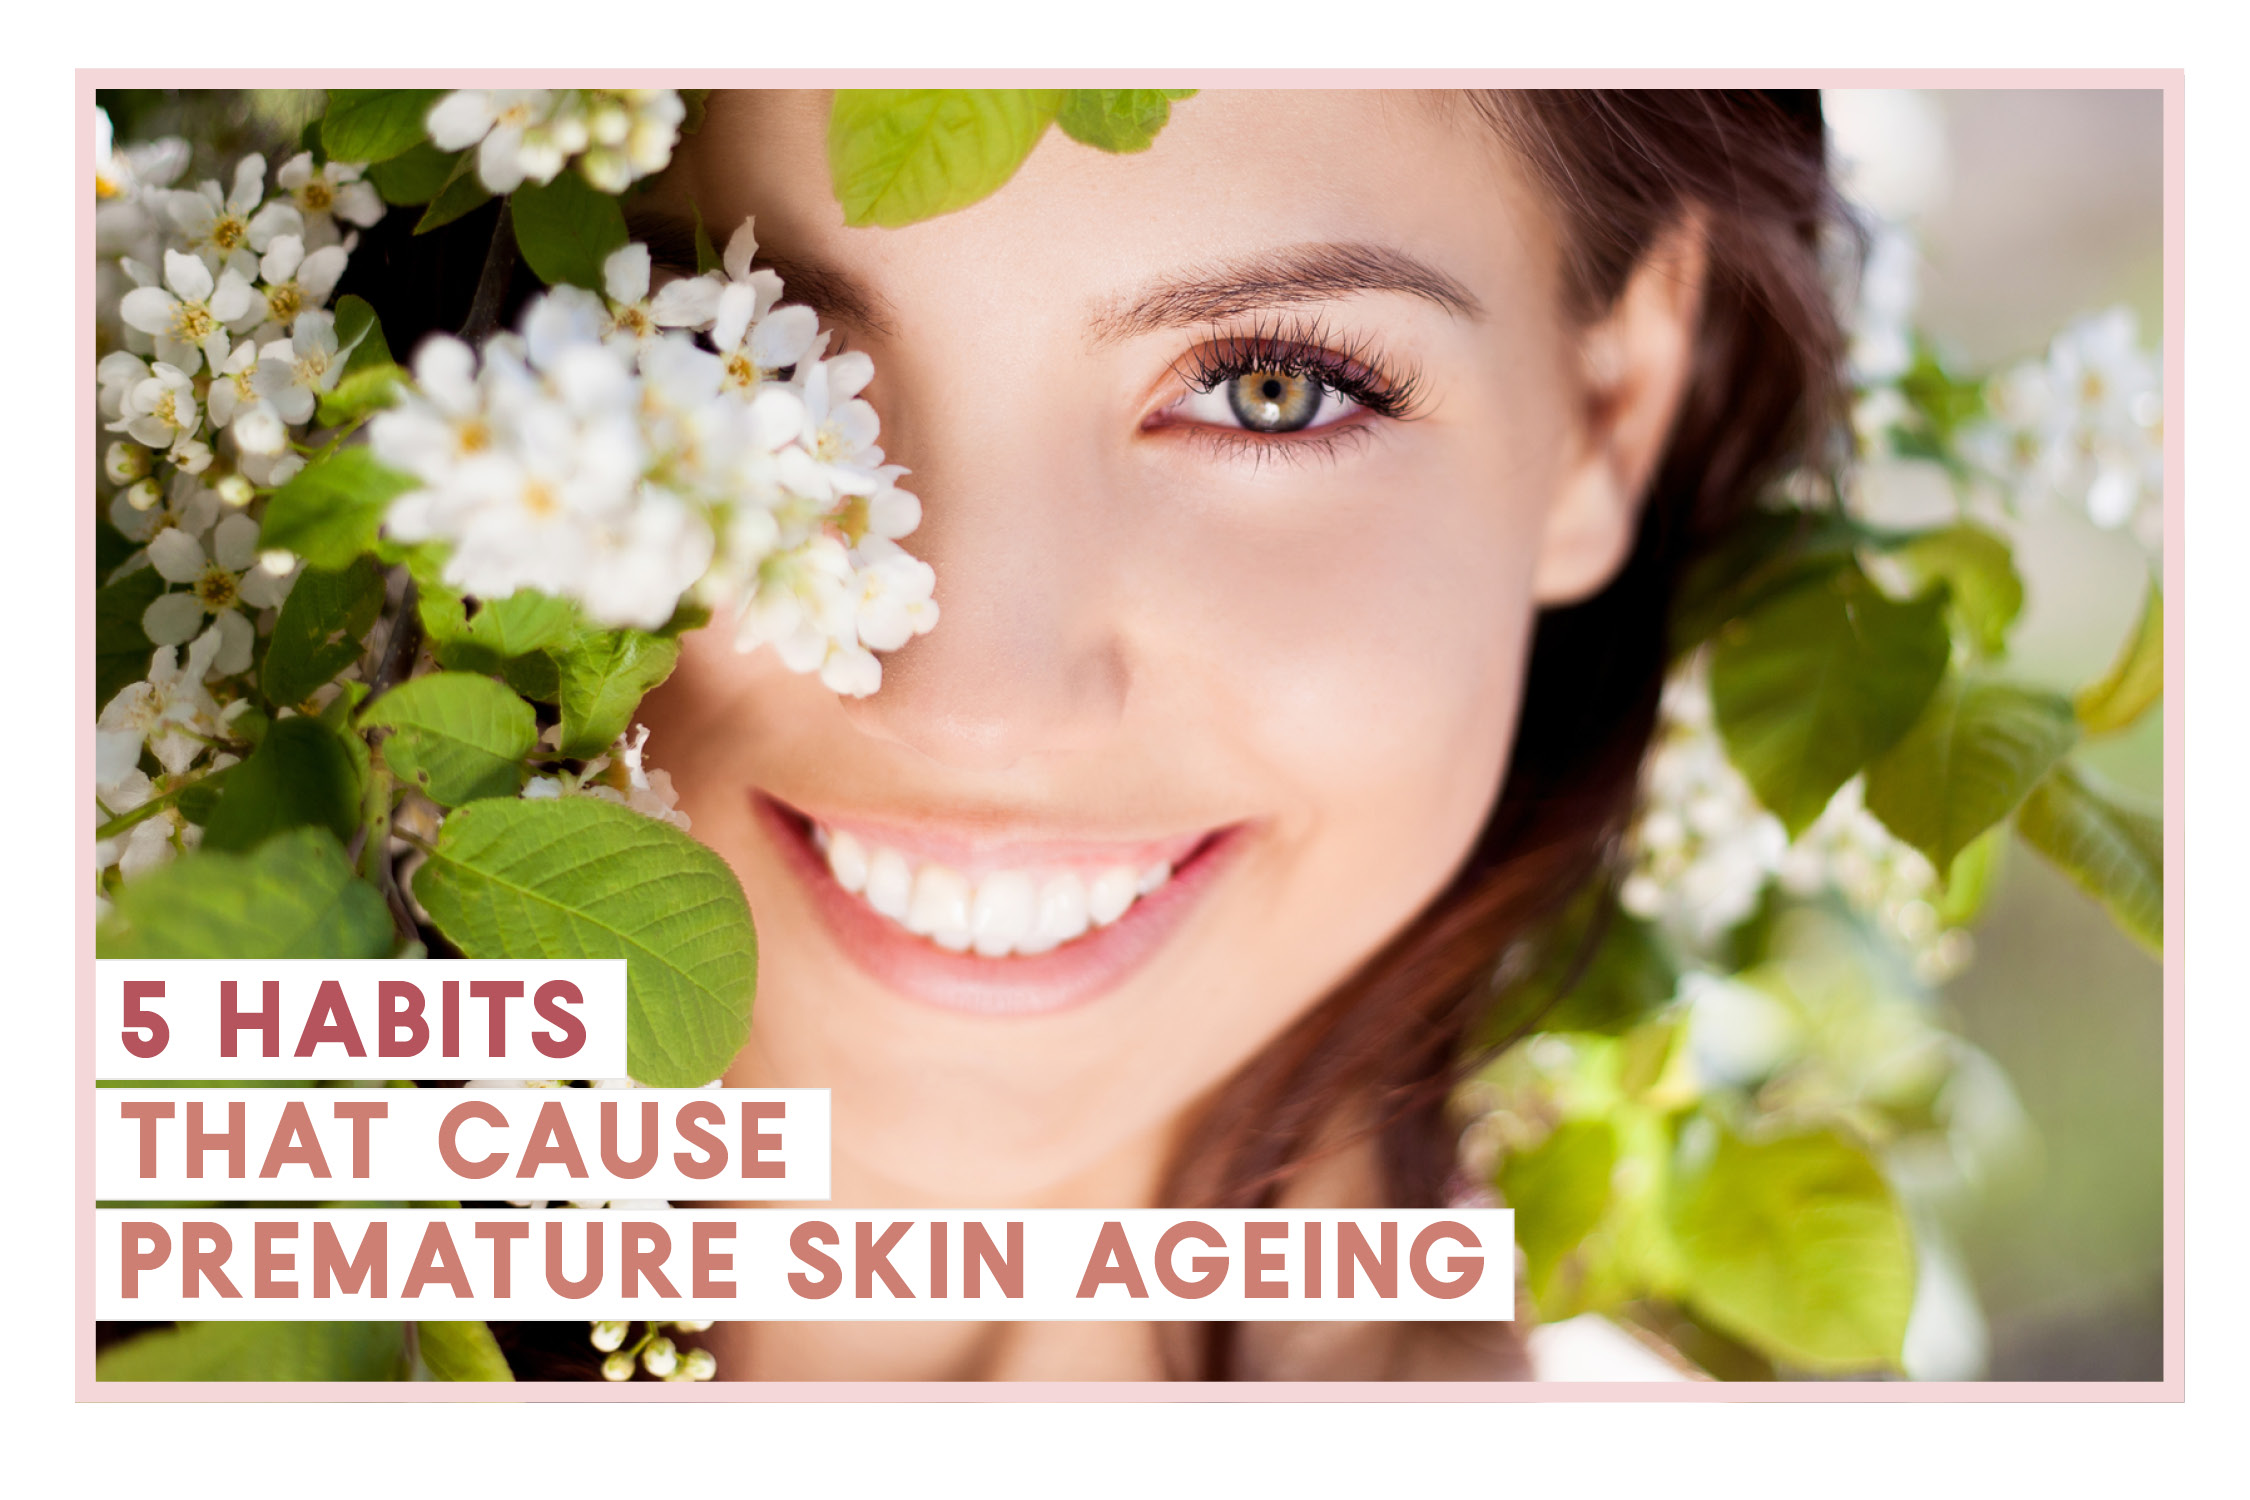 5 Habits That Cause Premature Skin Ageing